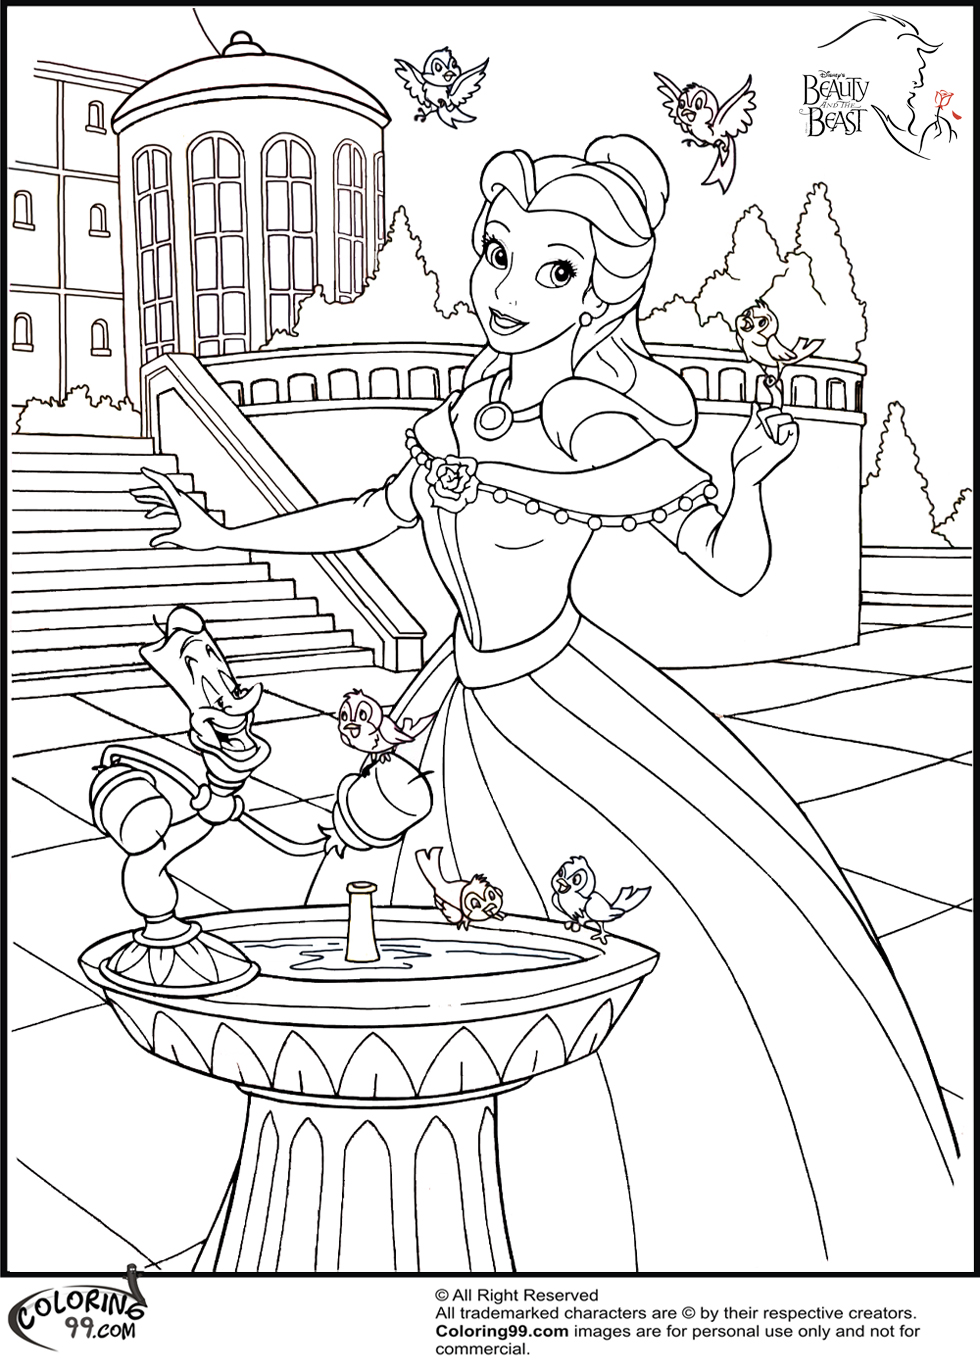 Disney Princess Belle Coloring Pages   Minister Coloring   disney coloring pages for adults printable